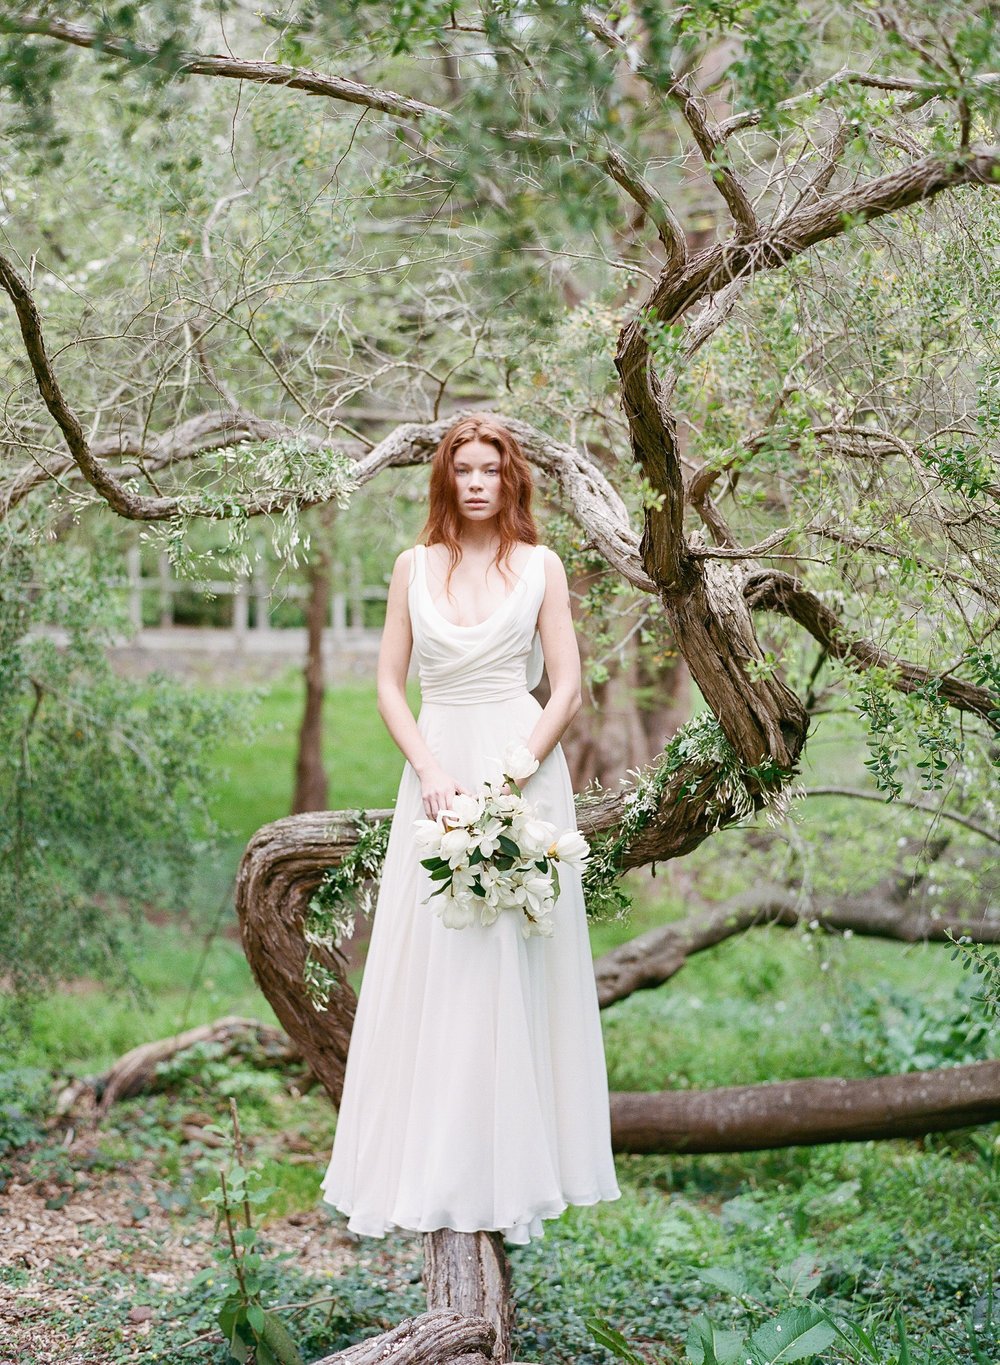 A bride stands barefoot in a tree with loose hair and a gardenia bouquet; Sylvie Gil Photography